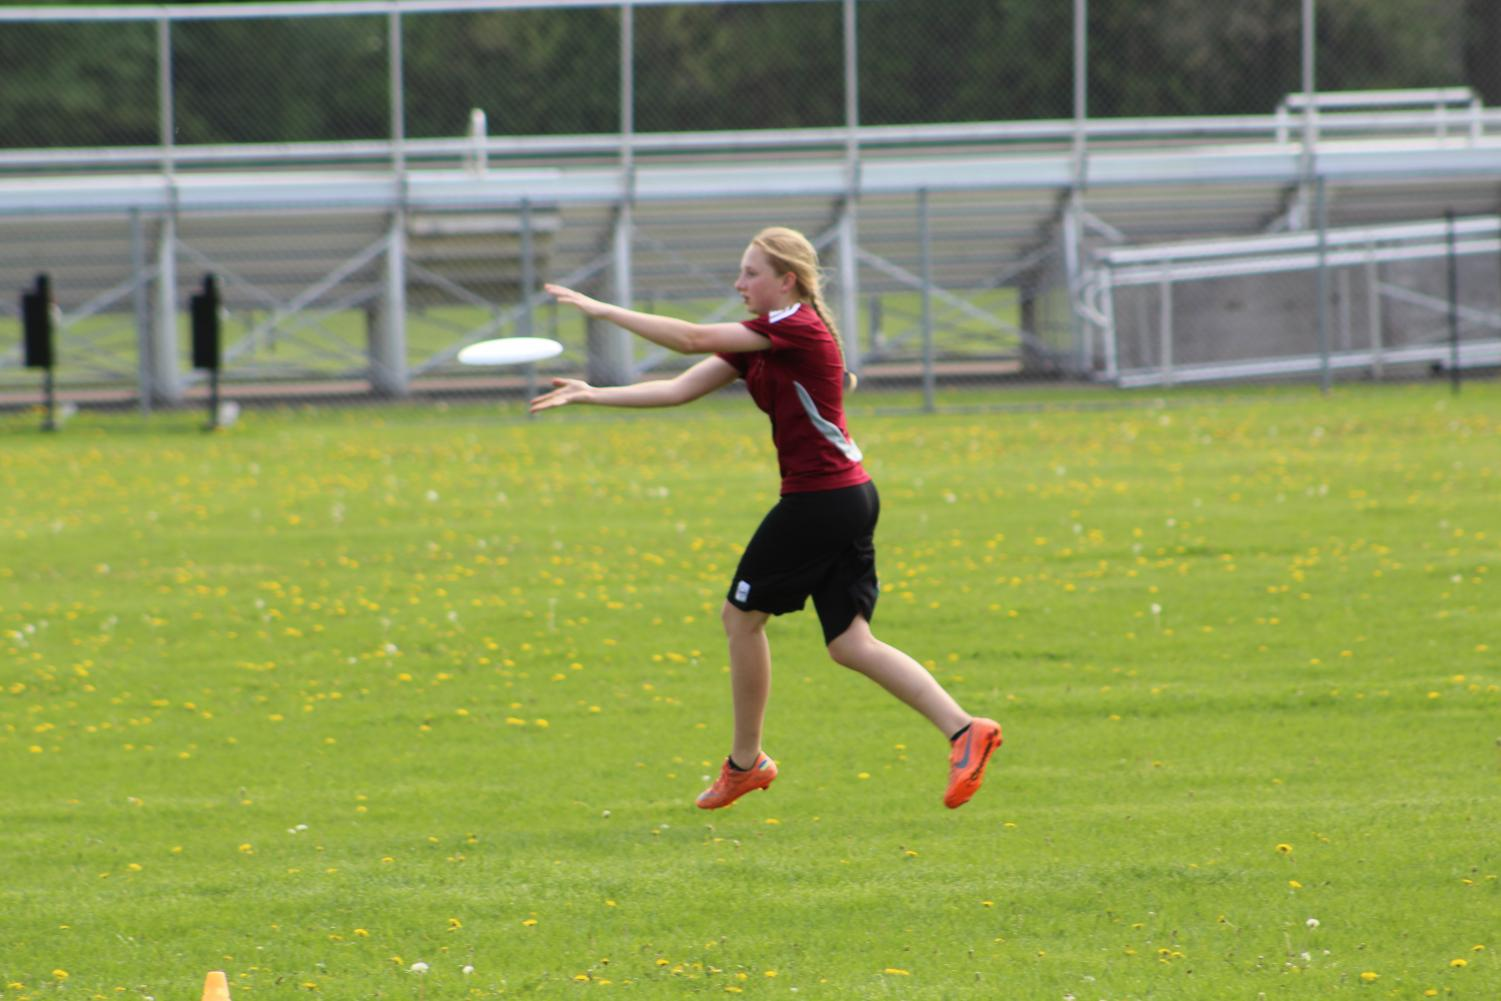 Freshman Amara Foner runs and catches a pass during practice May 21. The team practiced various drills to prepare for their game against Apple Valley May 22.